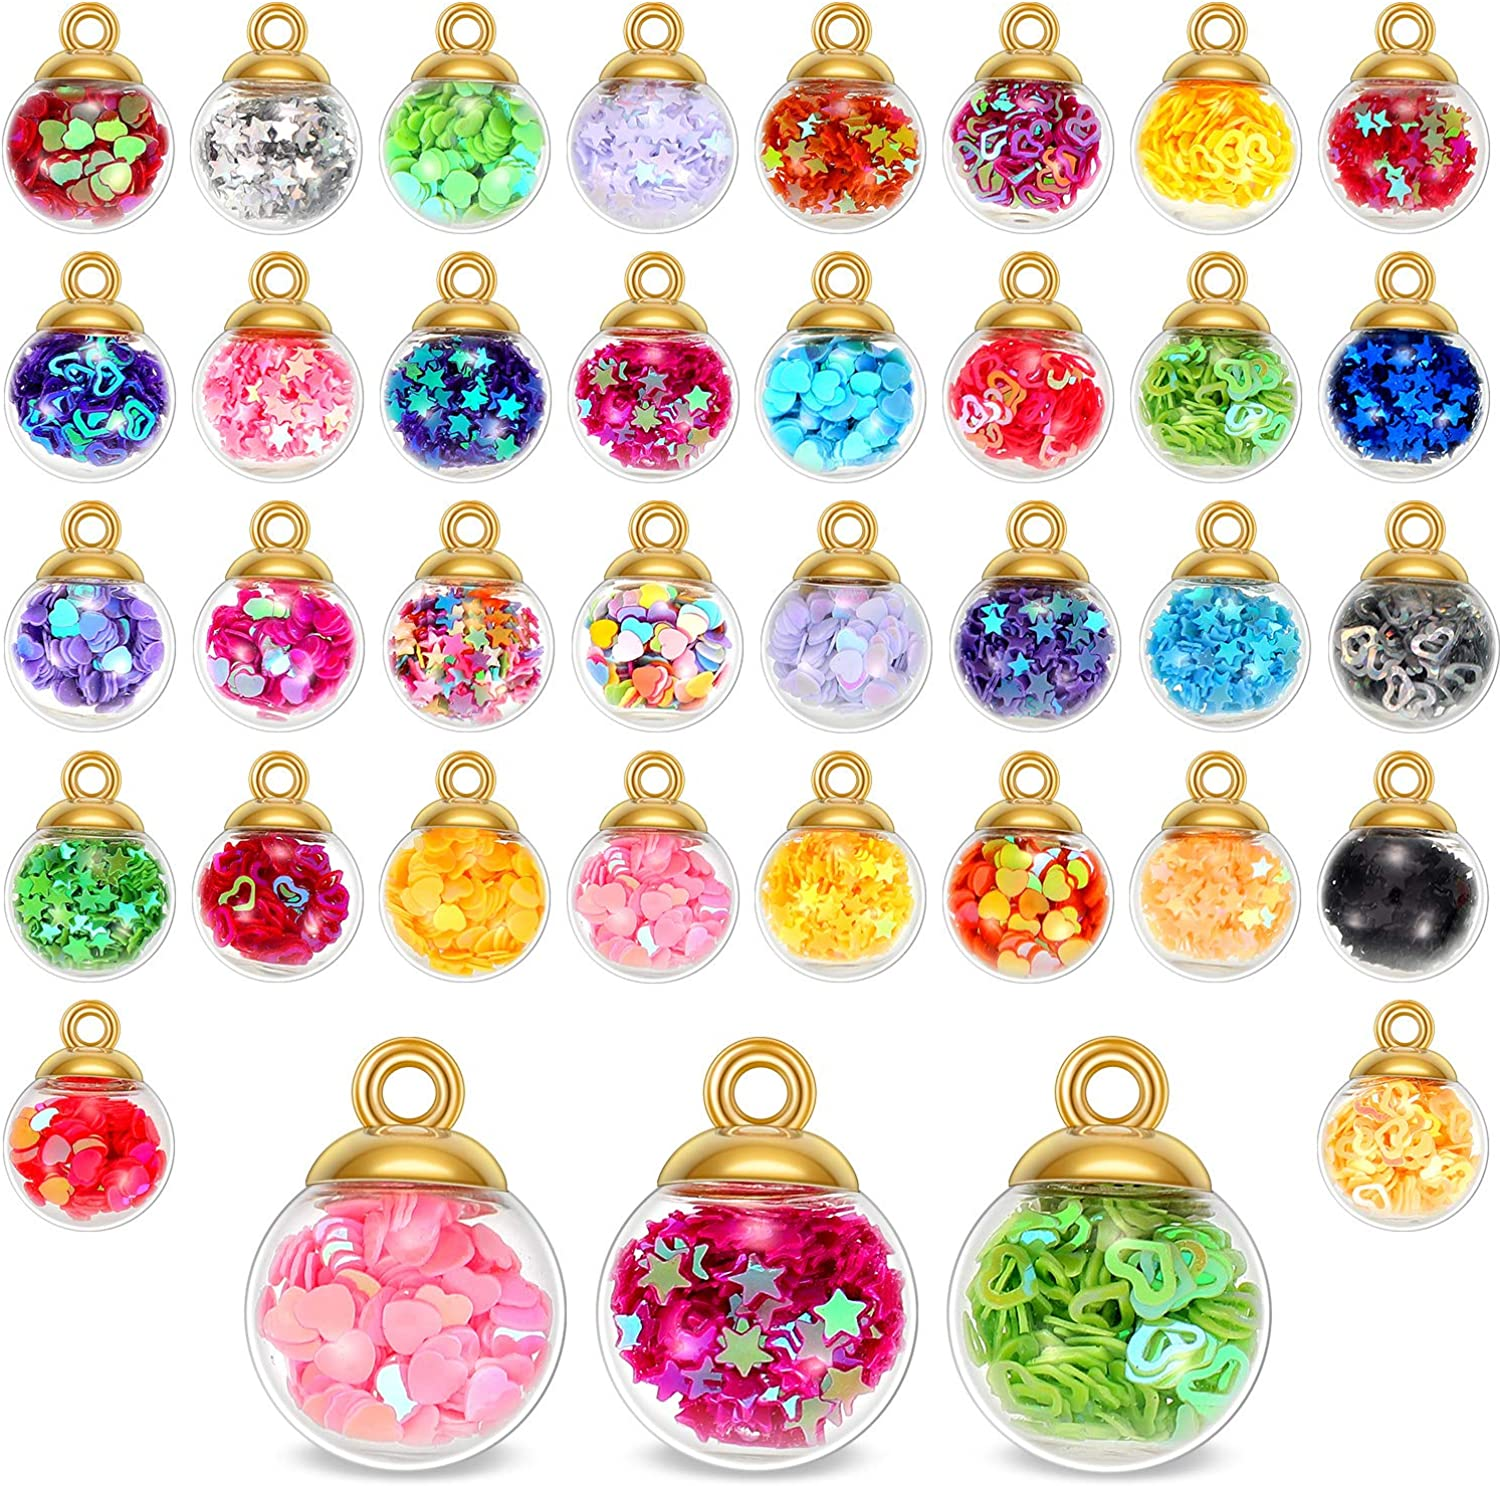 68 Pieces 16 mm Colorful Glass Ball Charms Crystal Glass Ball Pendants Jewelry Making Supplies with Shining Stars, Heart-shaped sequins and Peach Heart Sequins for DIY Necklace Bracelet Crafts